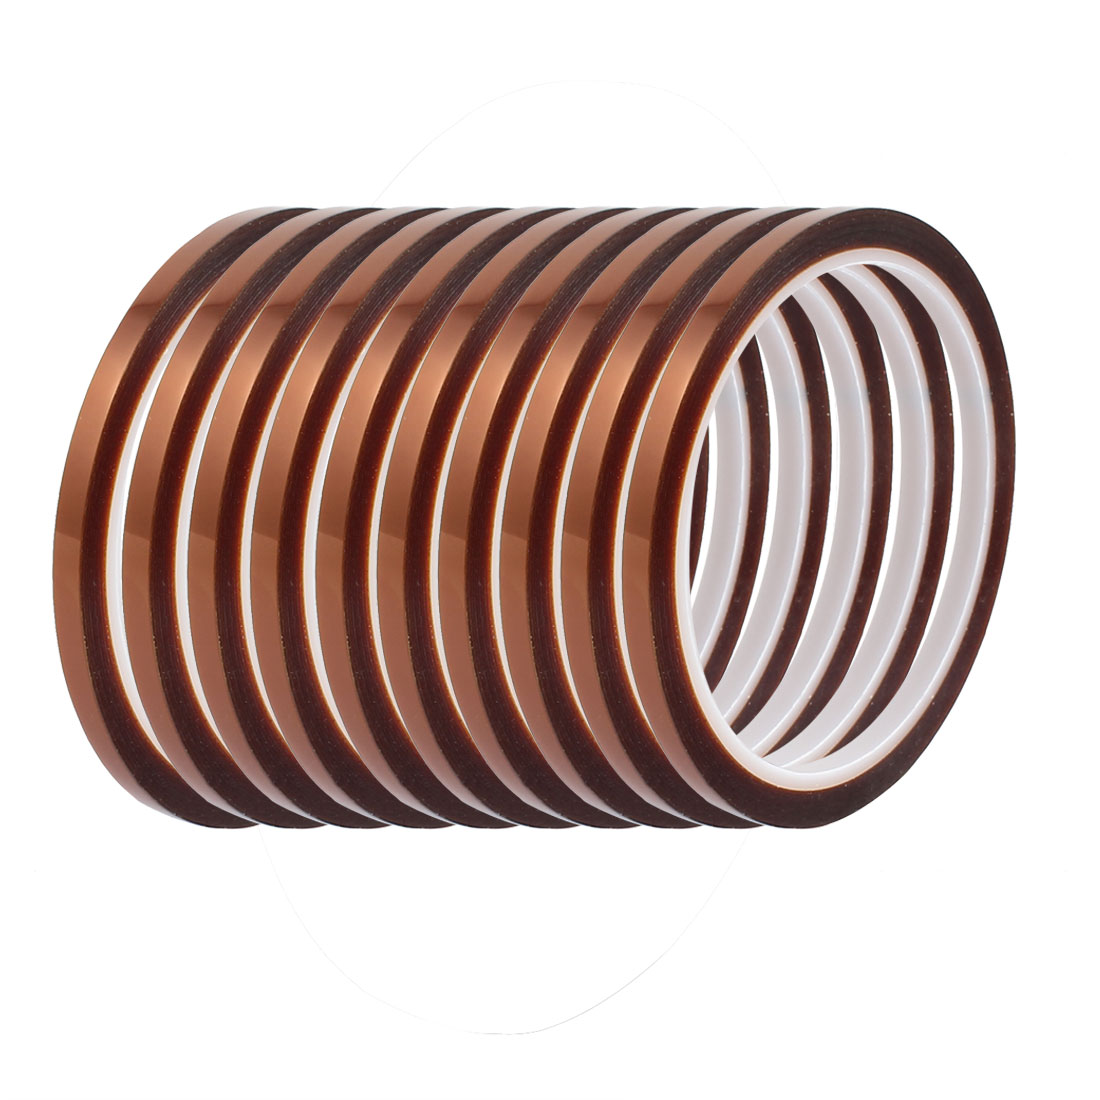 10 Pcs 5mm Width 3Length High Temp Heat Resistant Polyimide Tape Brown